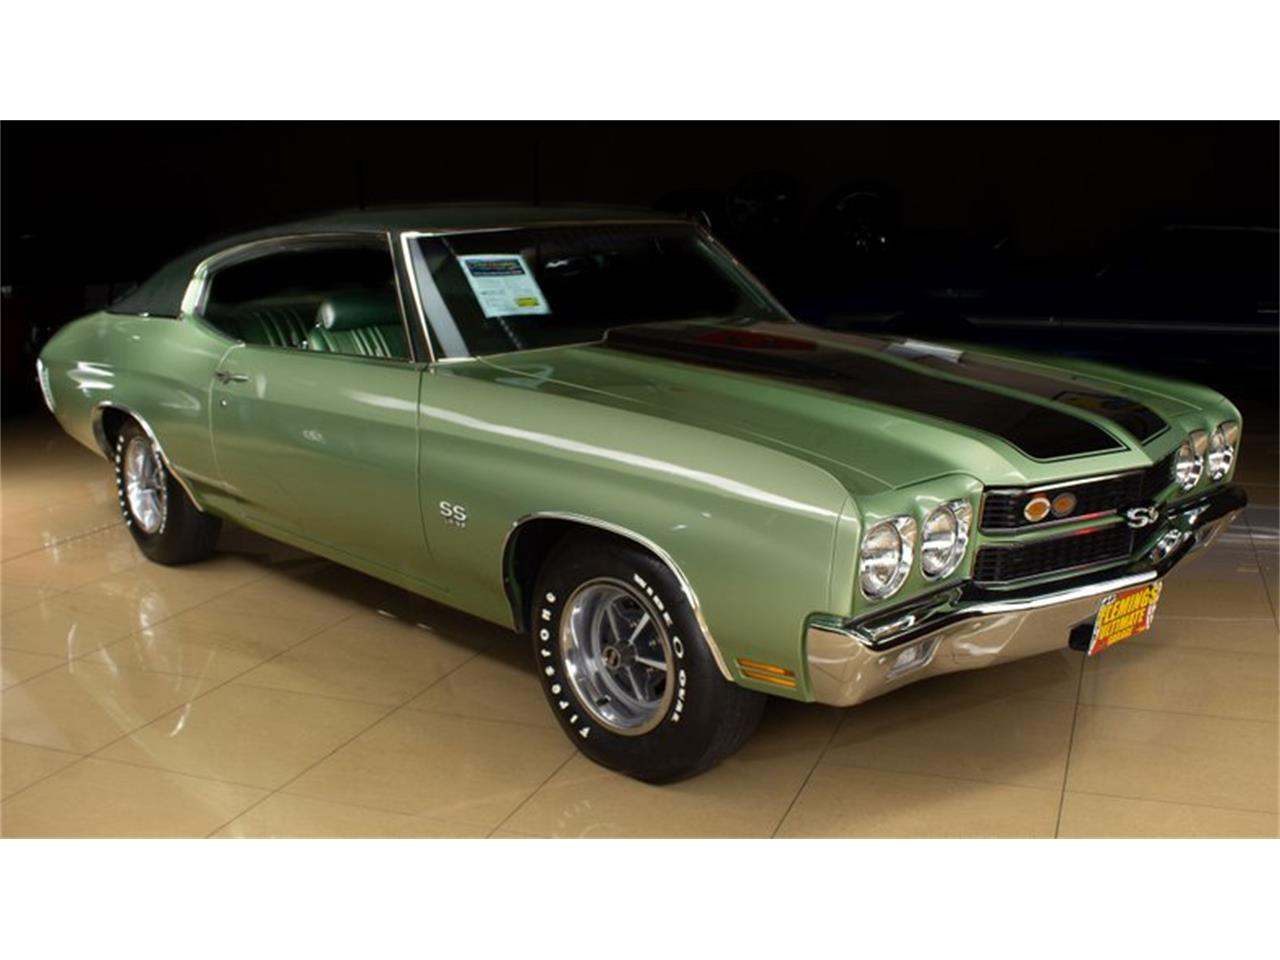 1970 Chevrolet Chevelle (CC-1410935) for sale in Rockville, Maryland